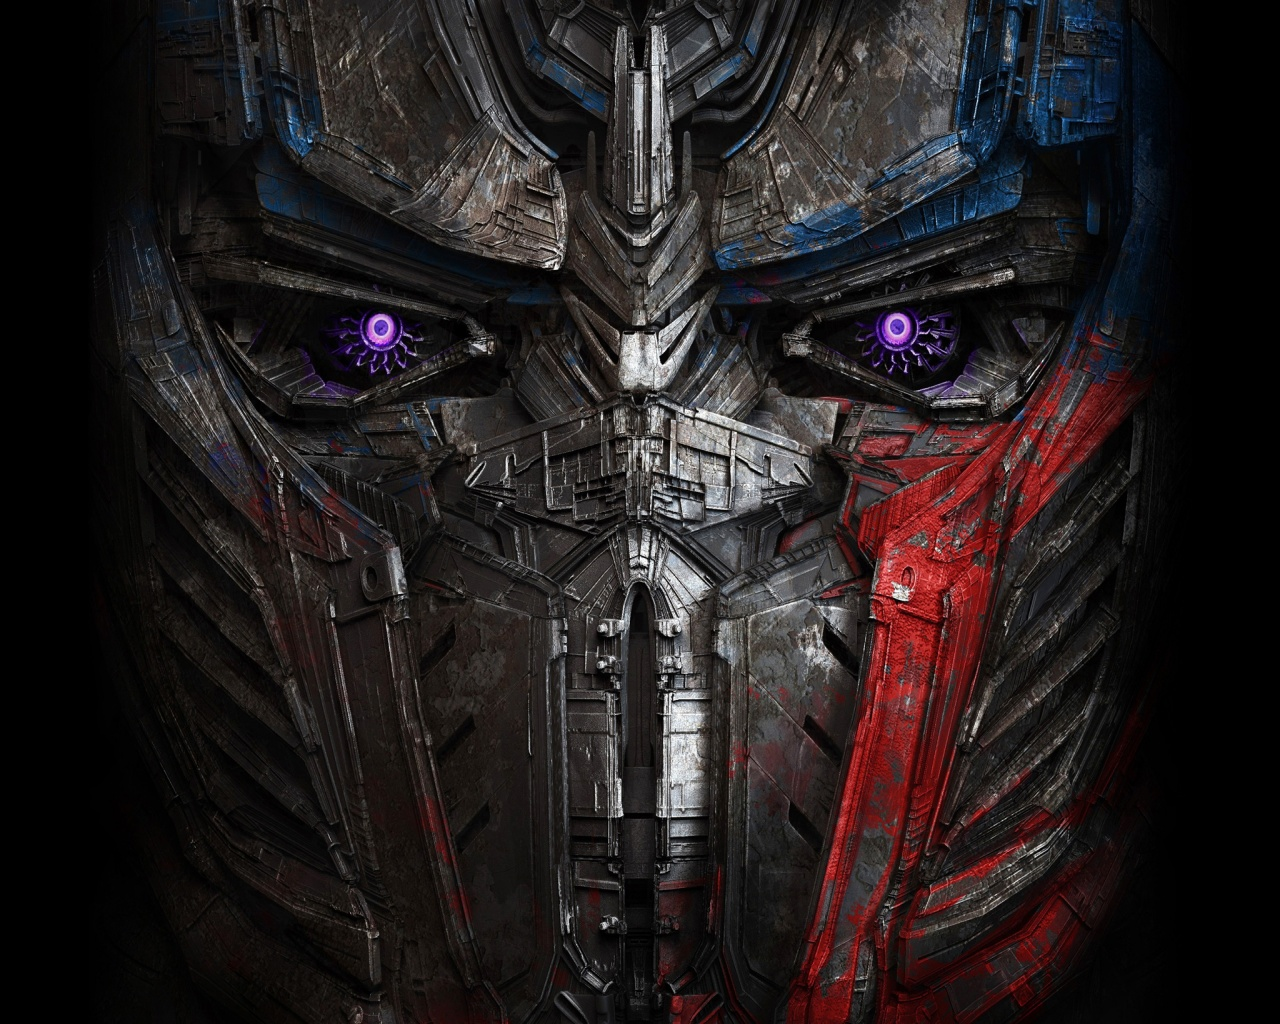 Transformers The Last Knight Wallpapers In Jpg Format For